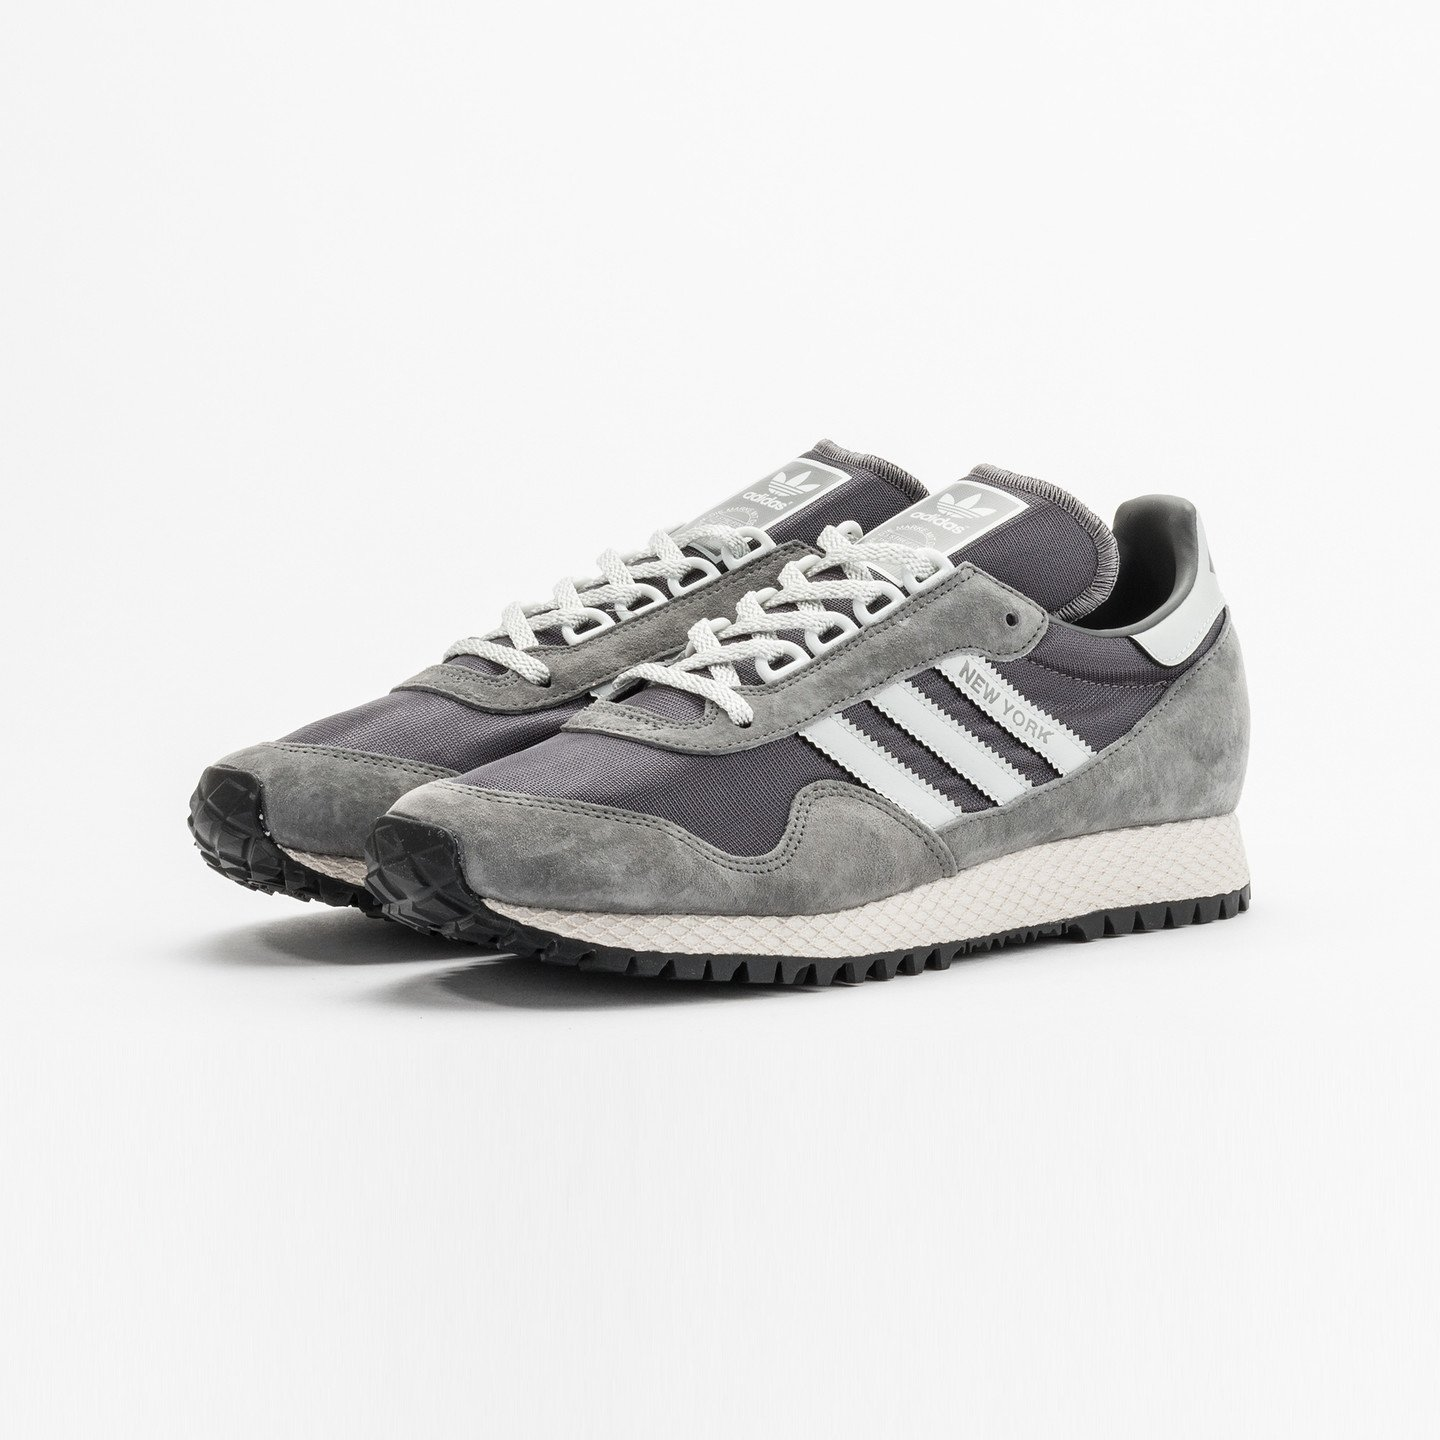 Adidas New York Granit / Clear Grey BB1186-43.33